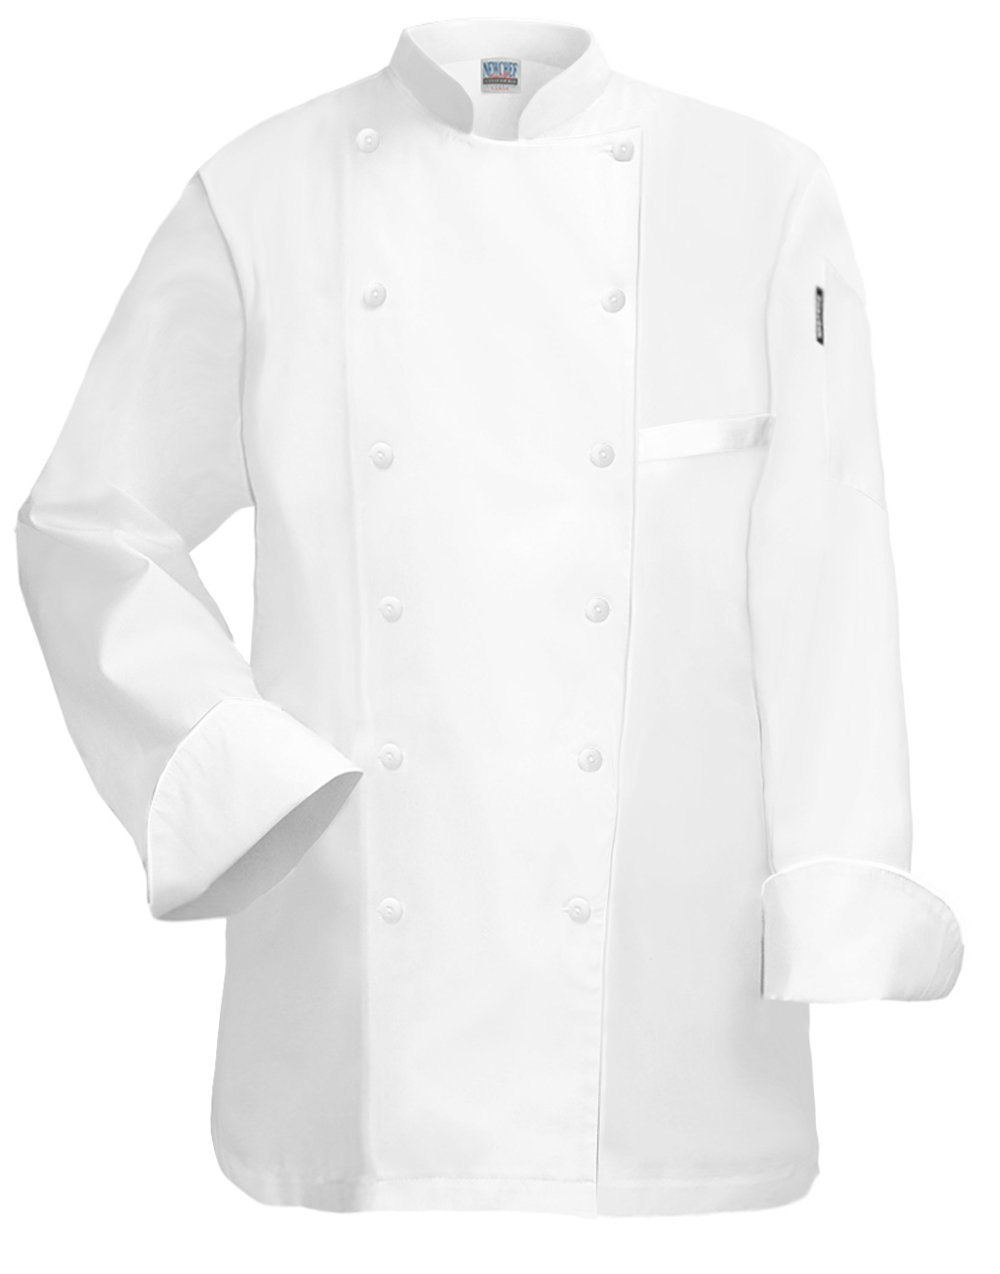 Newchef Fashion Princess Womens Chef Jacket XL White by Newchef Fashion